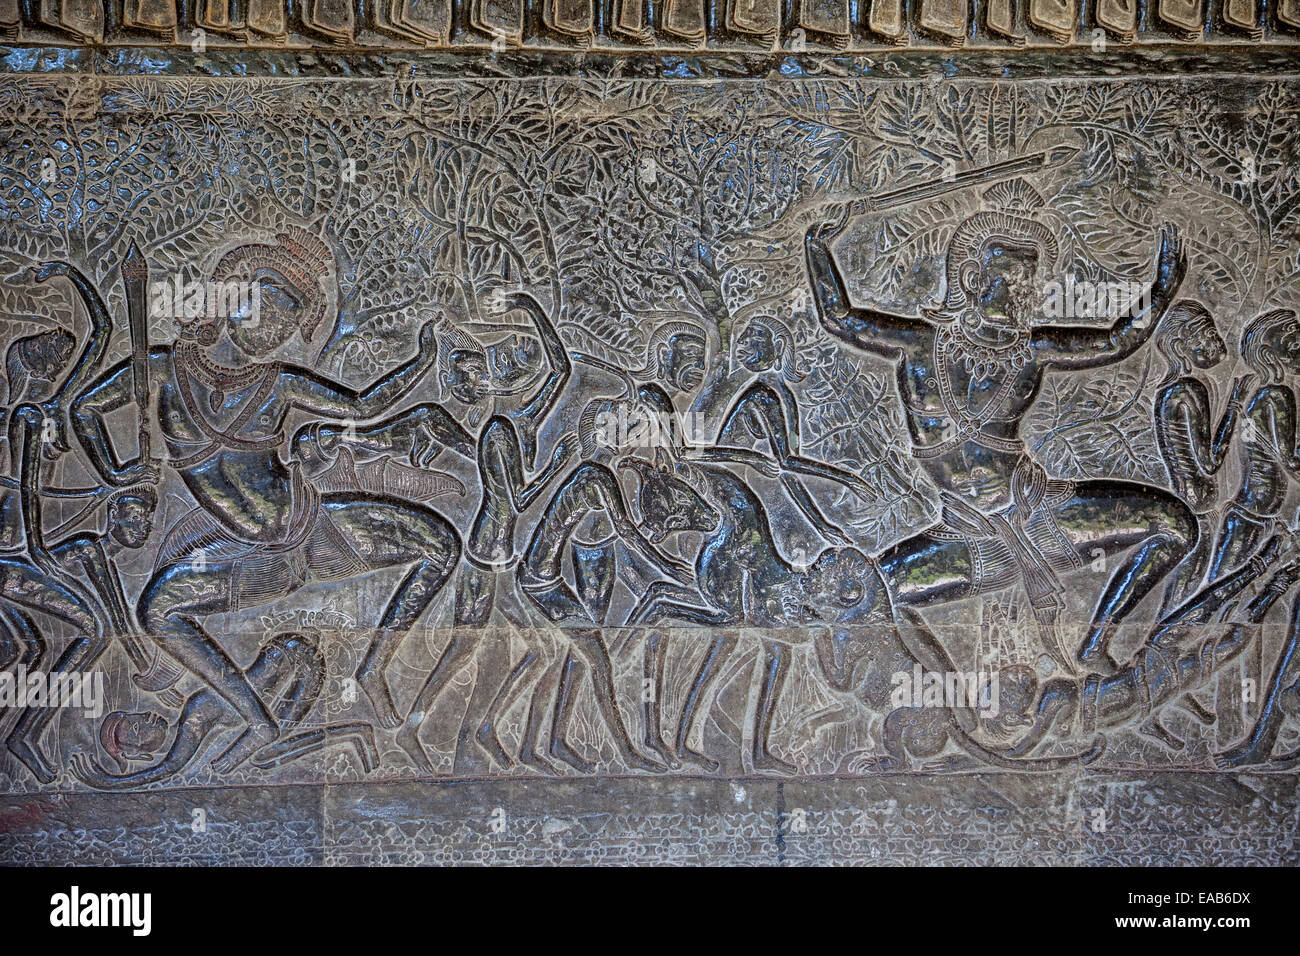 Cambodia angkor wat bas relief stone carving depicting